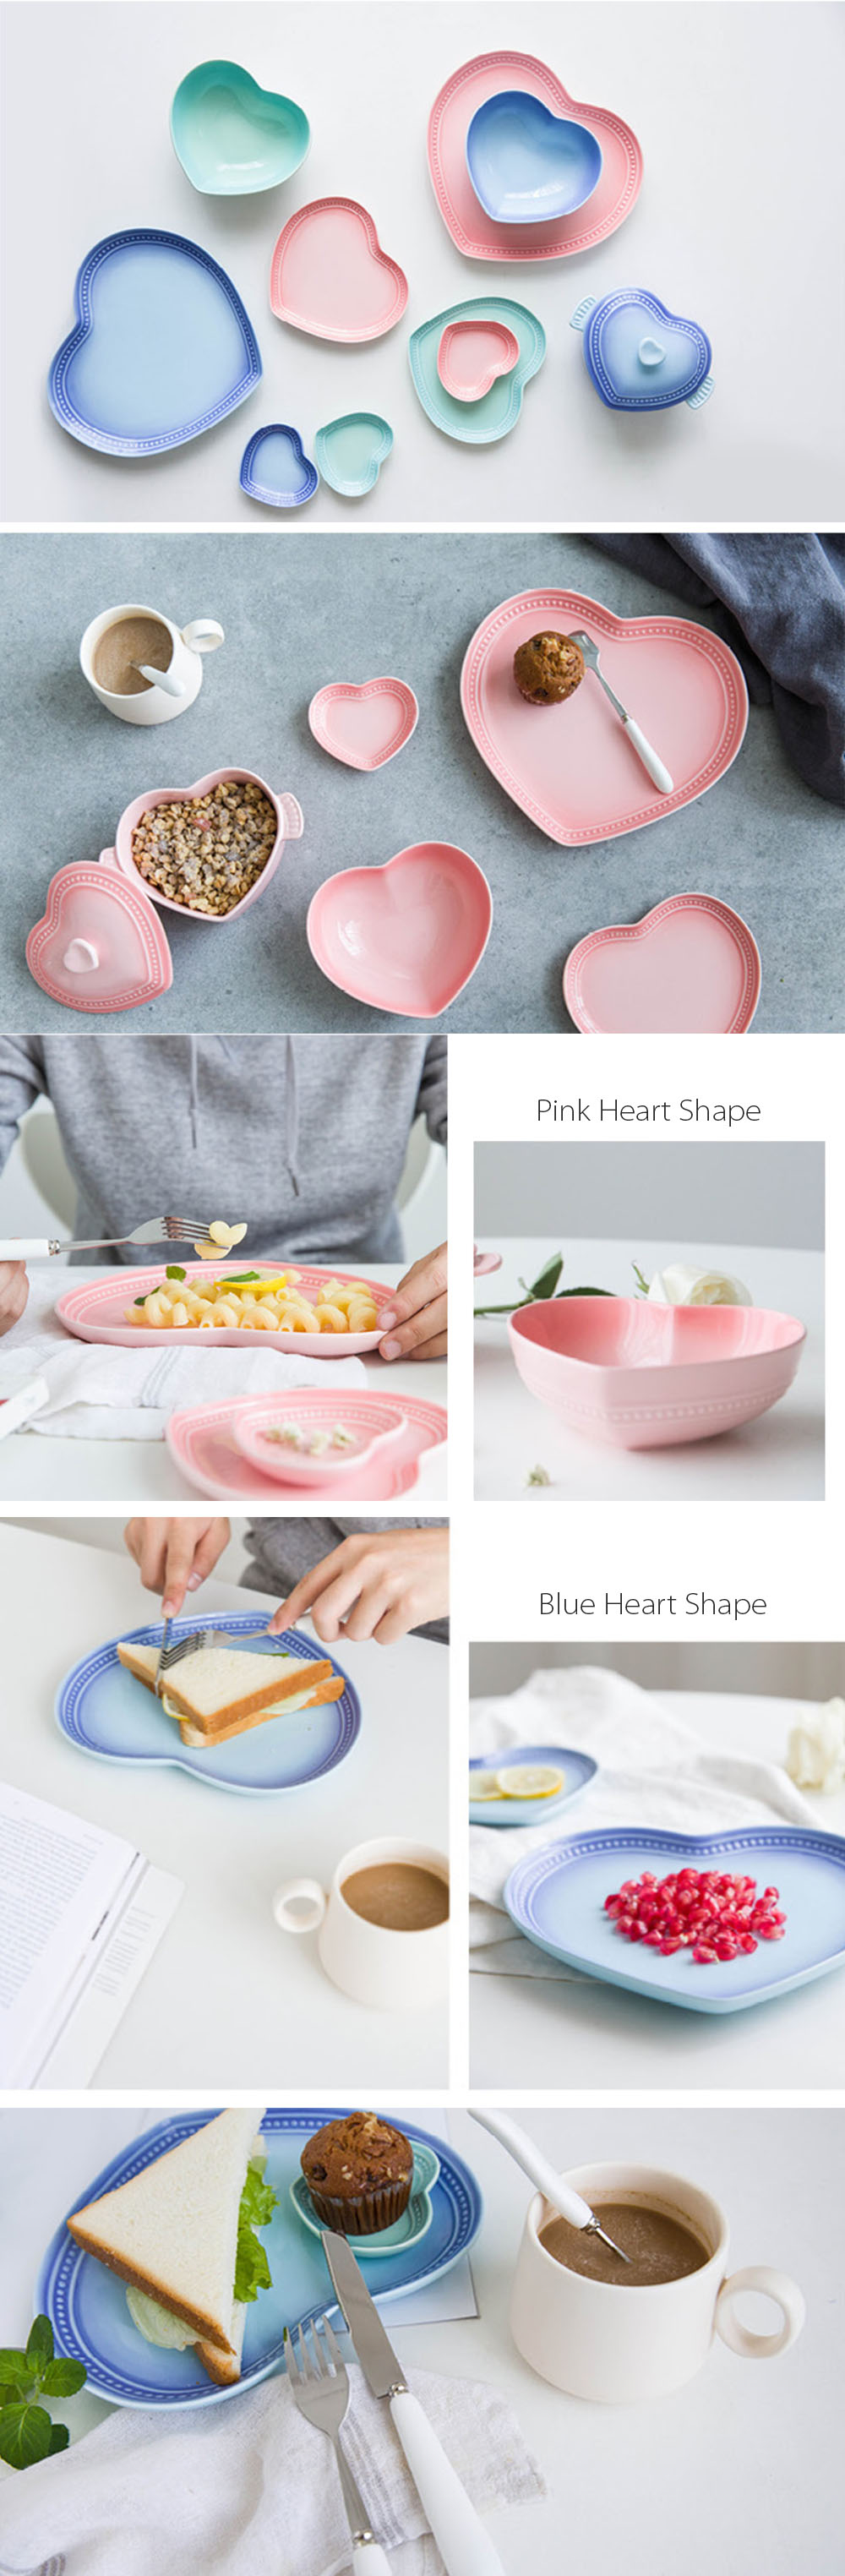 Heart Plates For Your Sweet Home